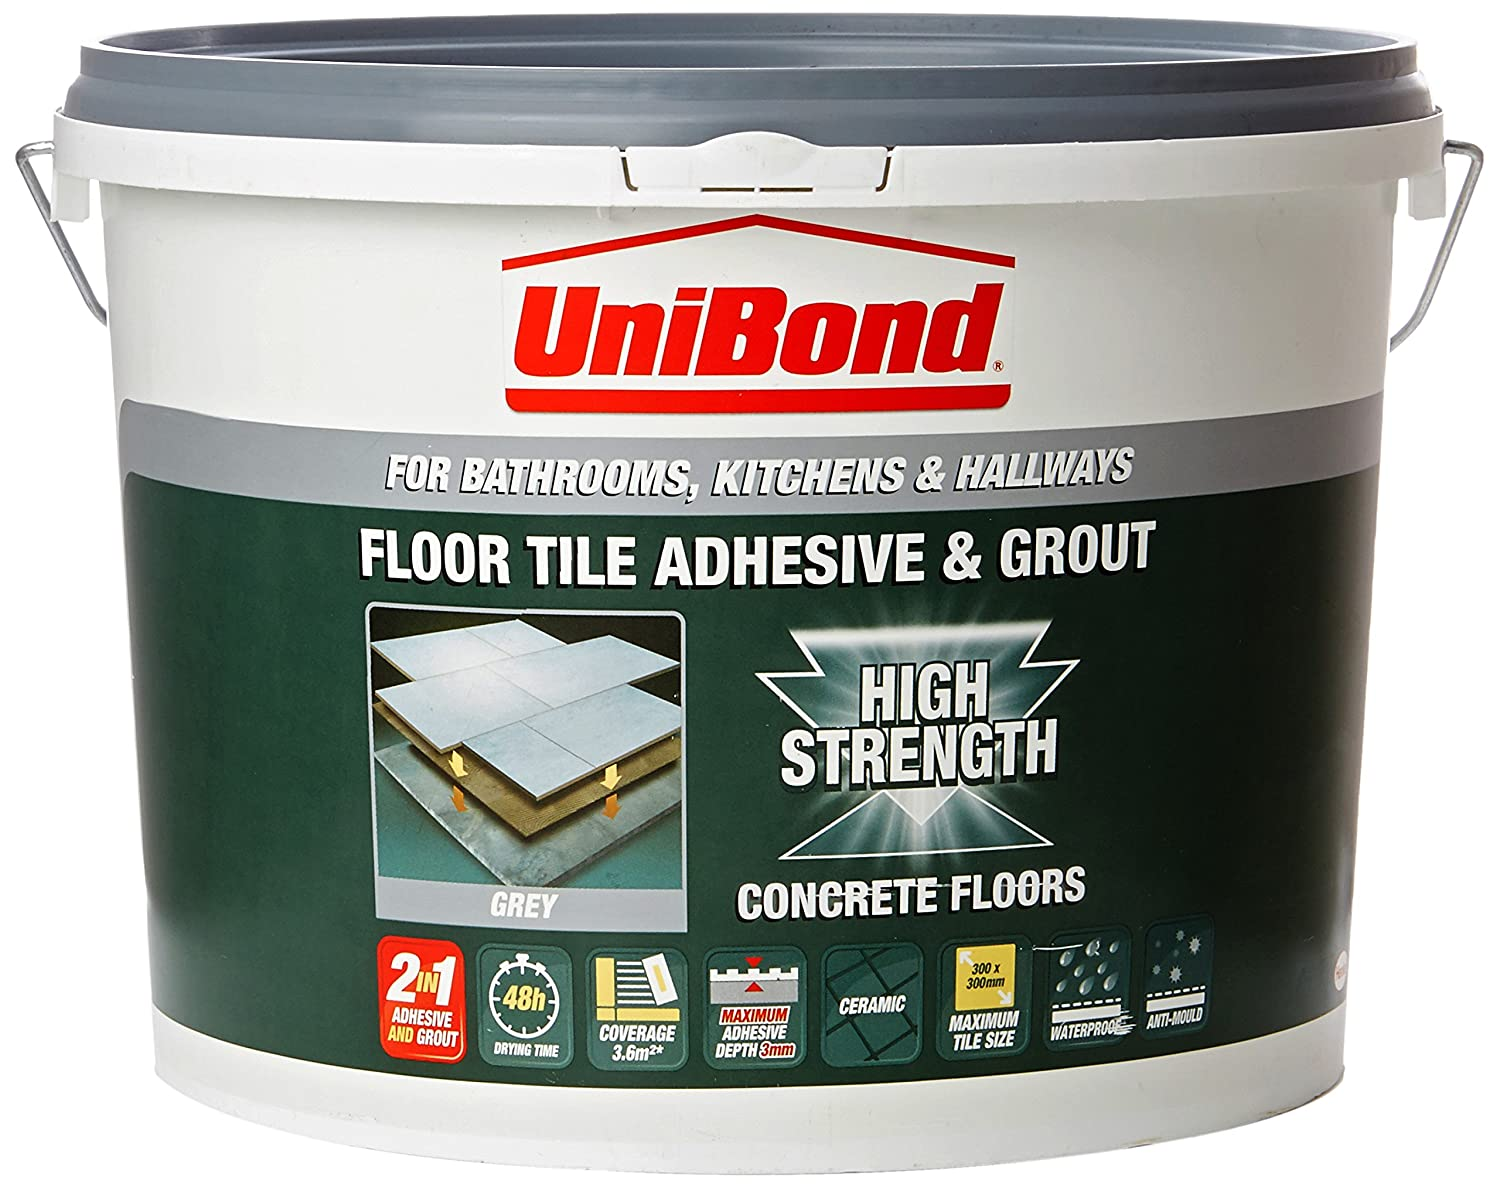 Unibond 1535347 concrete floor tile adhesive and grout bucket unibond 1535347 concrete floor tile adhesive and grout bucket grey amazon diy tools dailygadgetfo Gallery